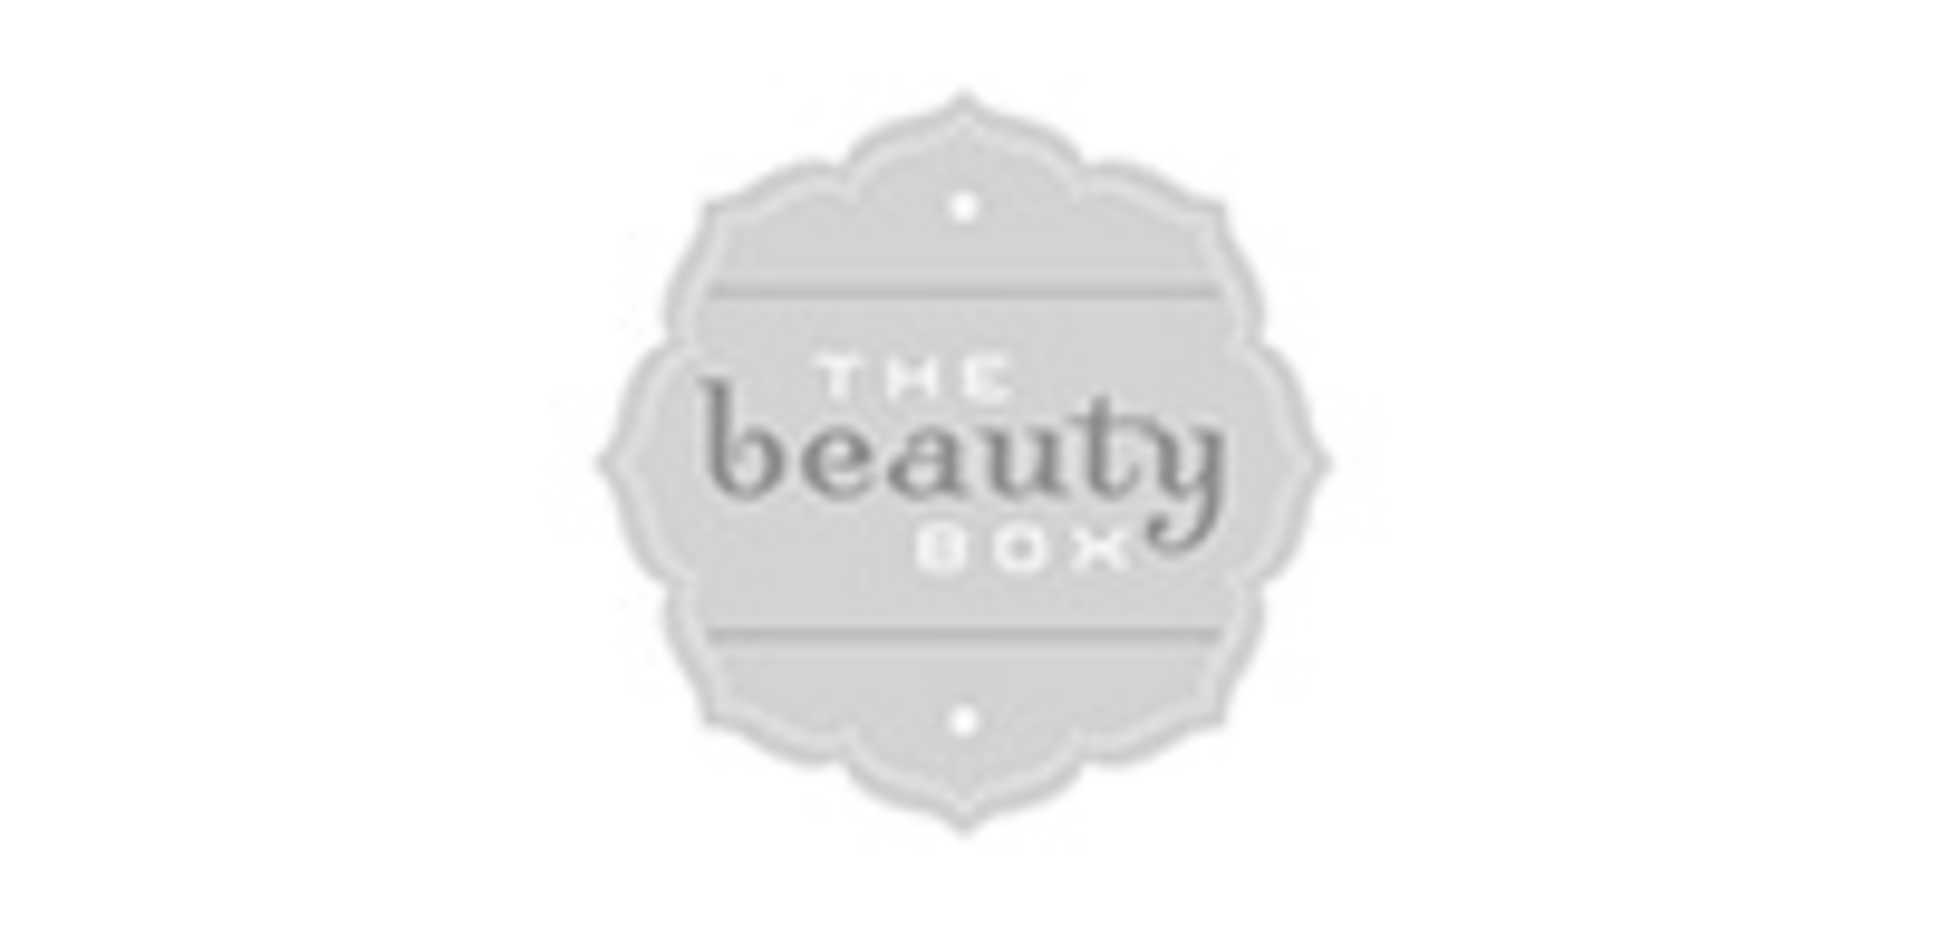 www.thebeautybox.com.br